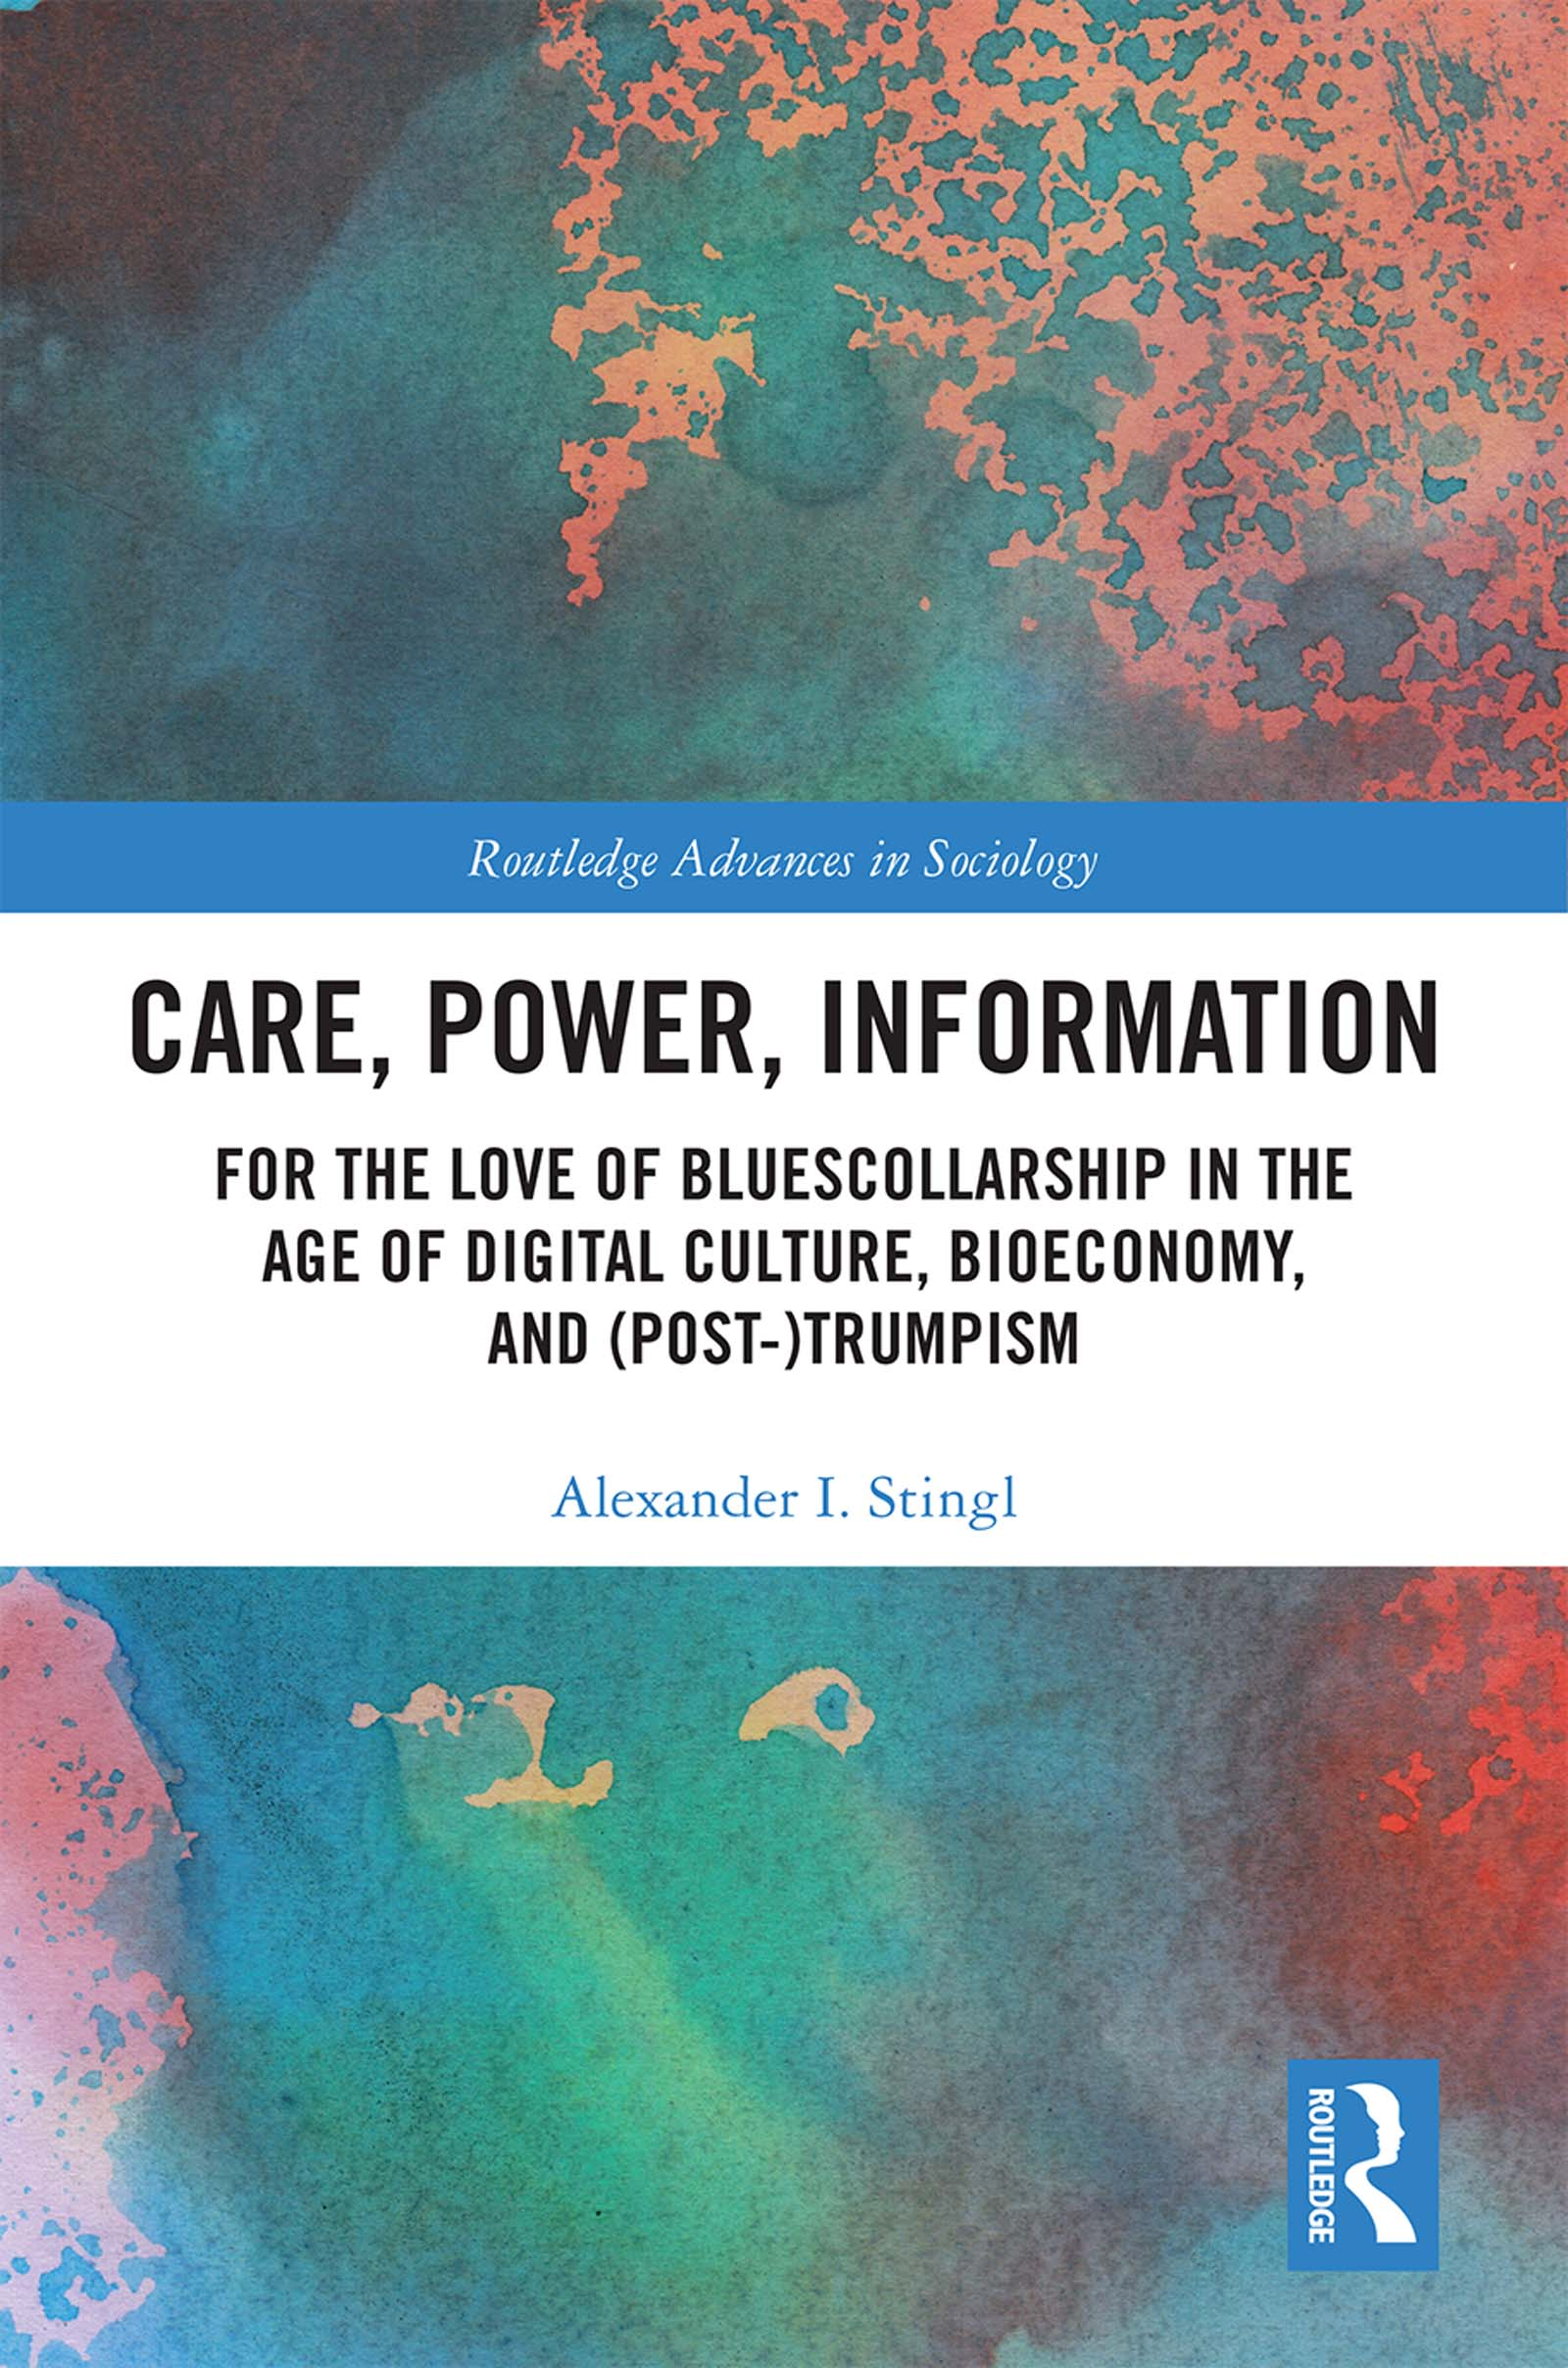 Care, Power, Information: For the Love of BluesCollarship in the Age of Digital Culture, Bioeconomy, and (Post-)Trumpism book cover